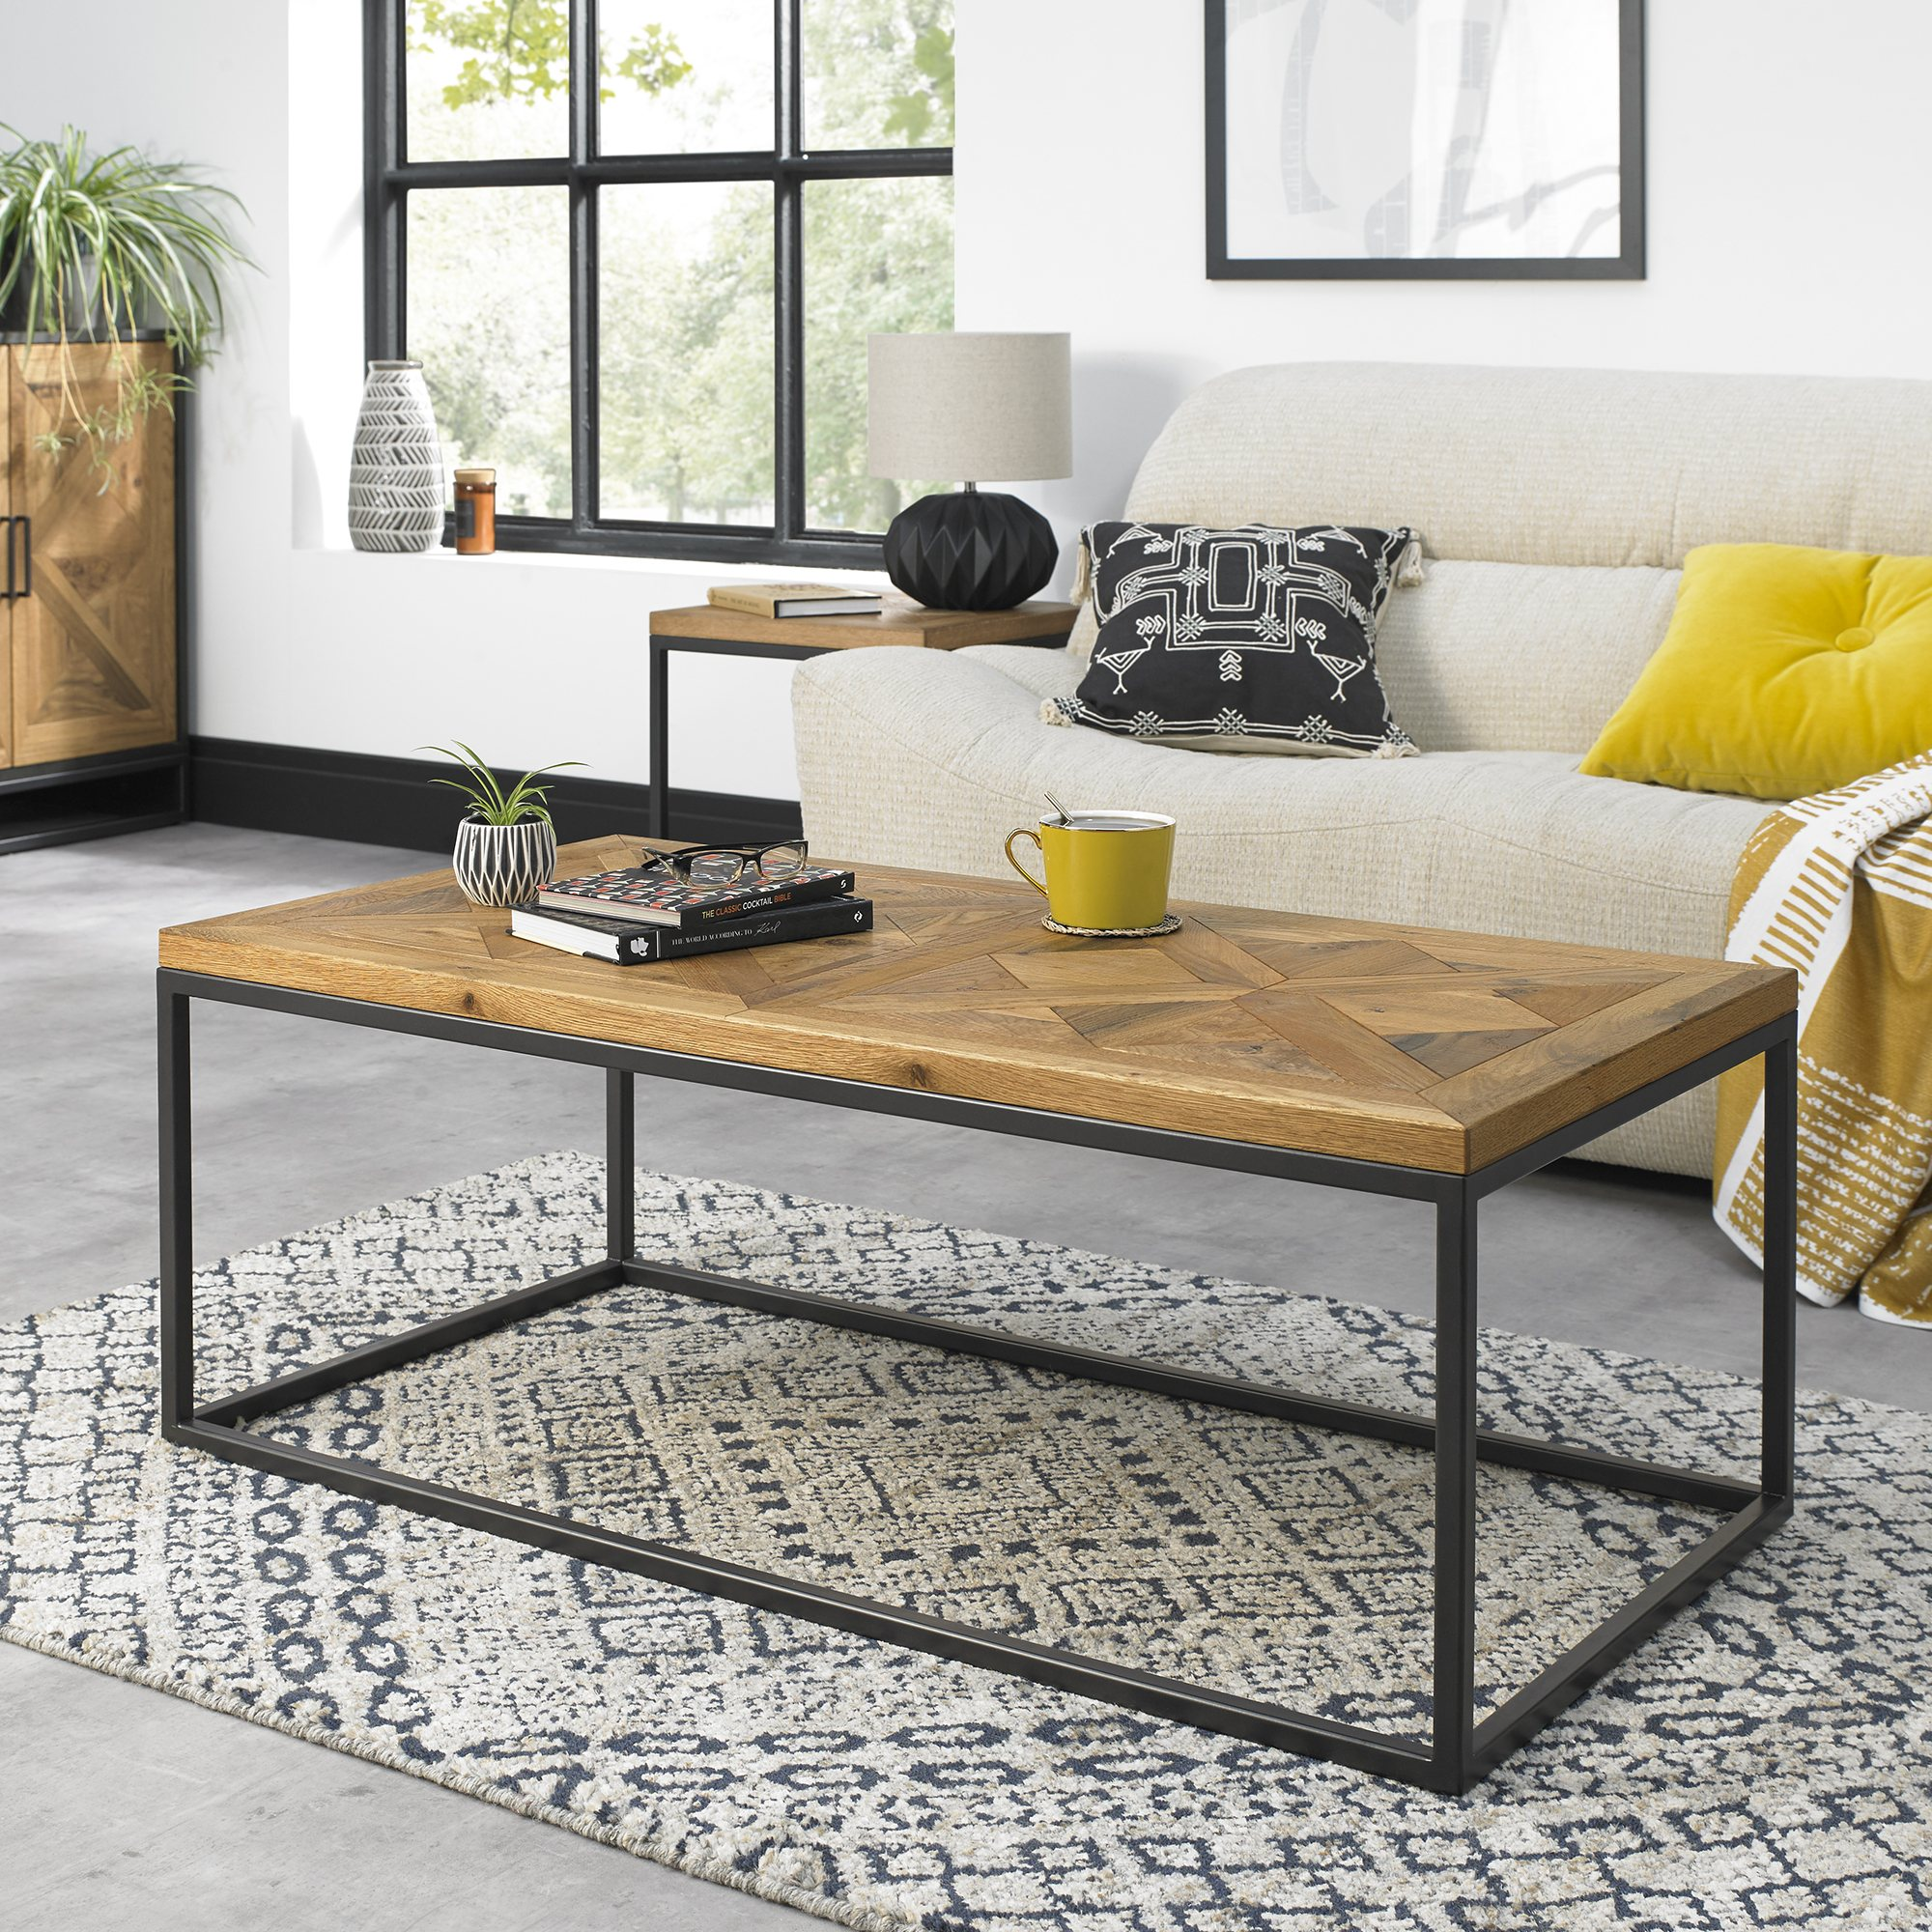 HELIX COFFEE TABLE  L114cm x D60cm x H42cm